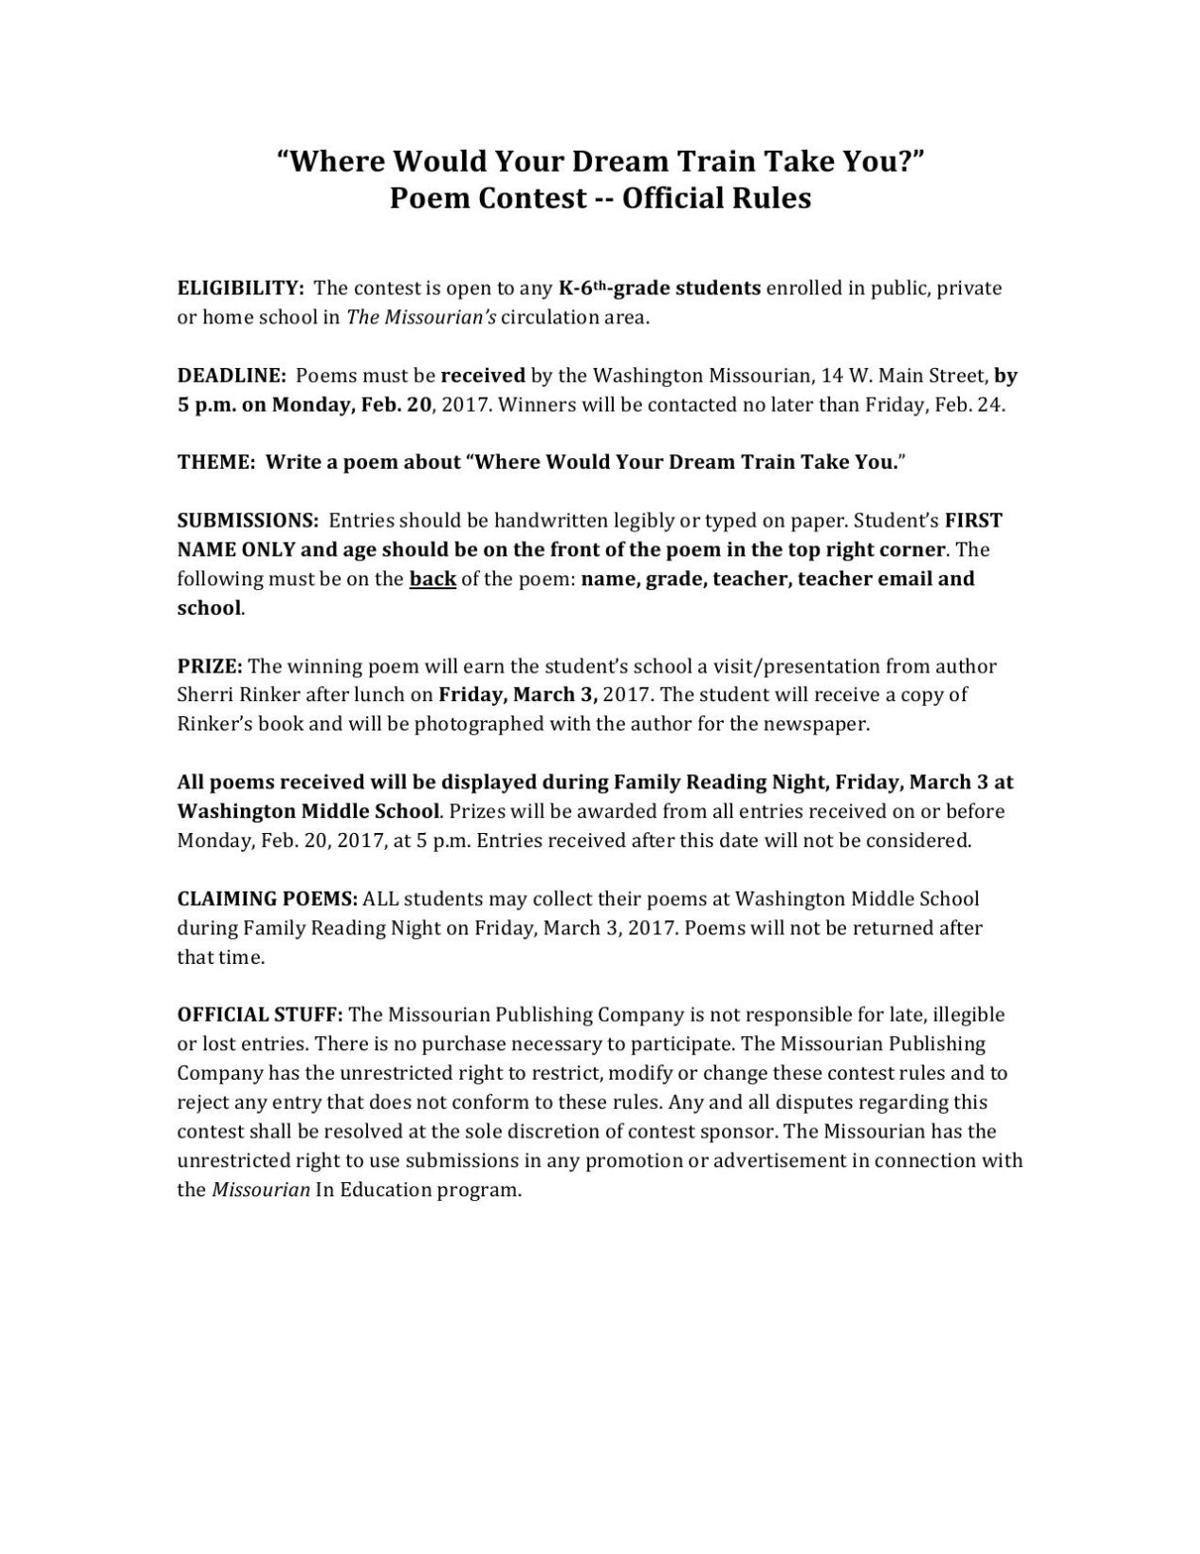 Poetry Contest Rules